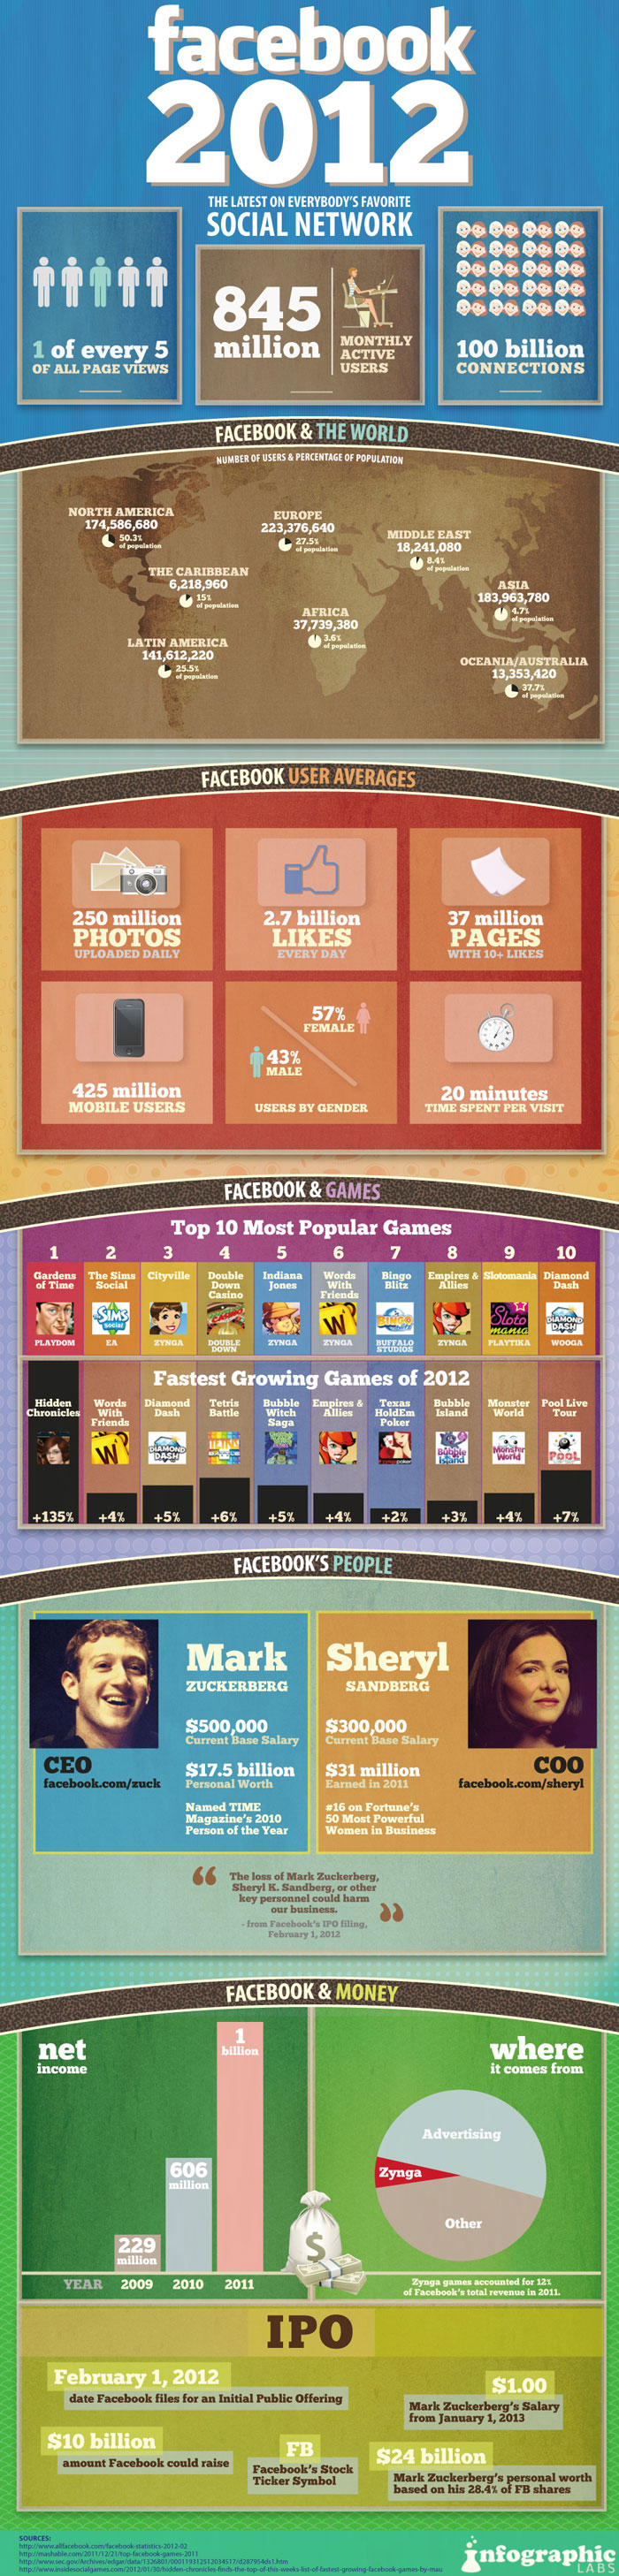 Facebook User Statistics 2012 Infographic